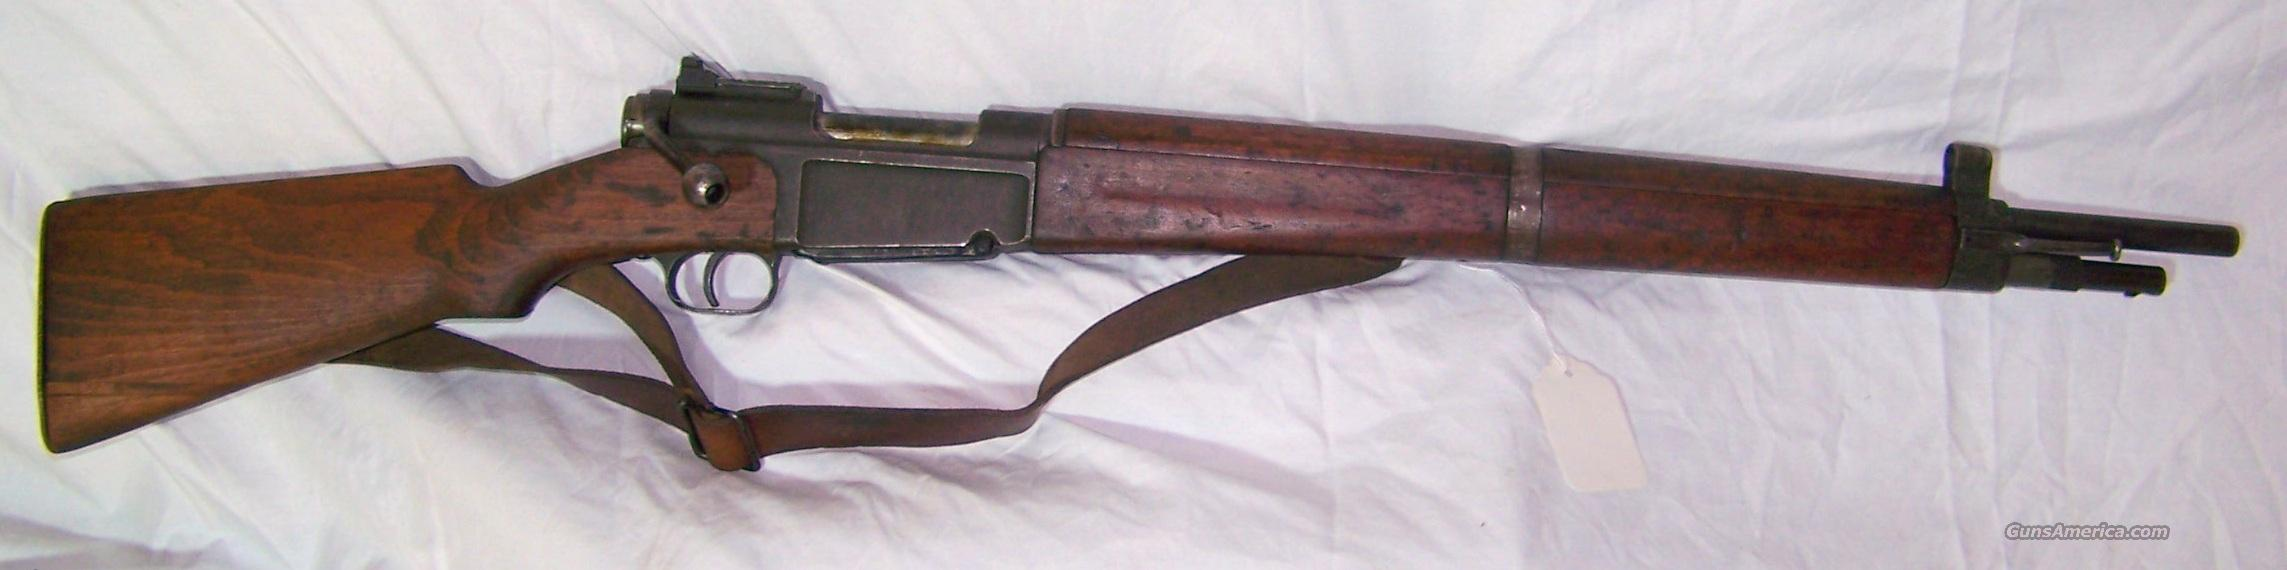 M36 French MAS 7.5 French (7.5x54mm)  Guns > Rifles > Military Misc. Rifles Non-US > FrenchMAS